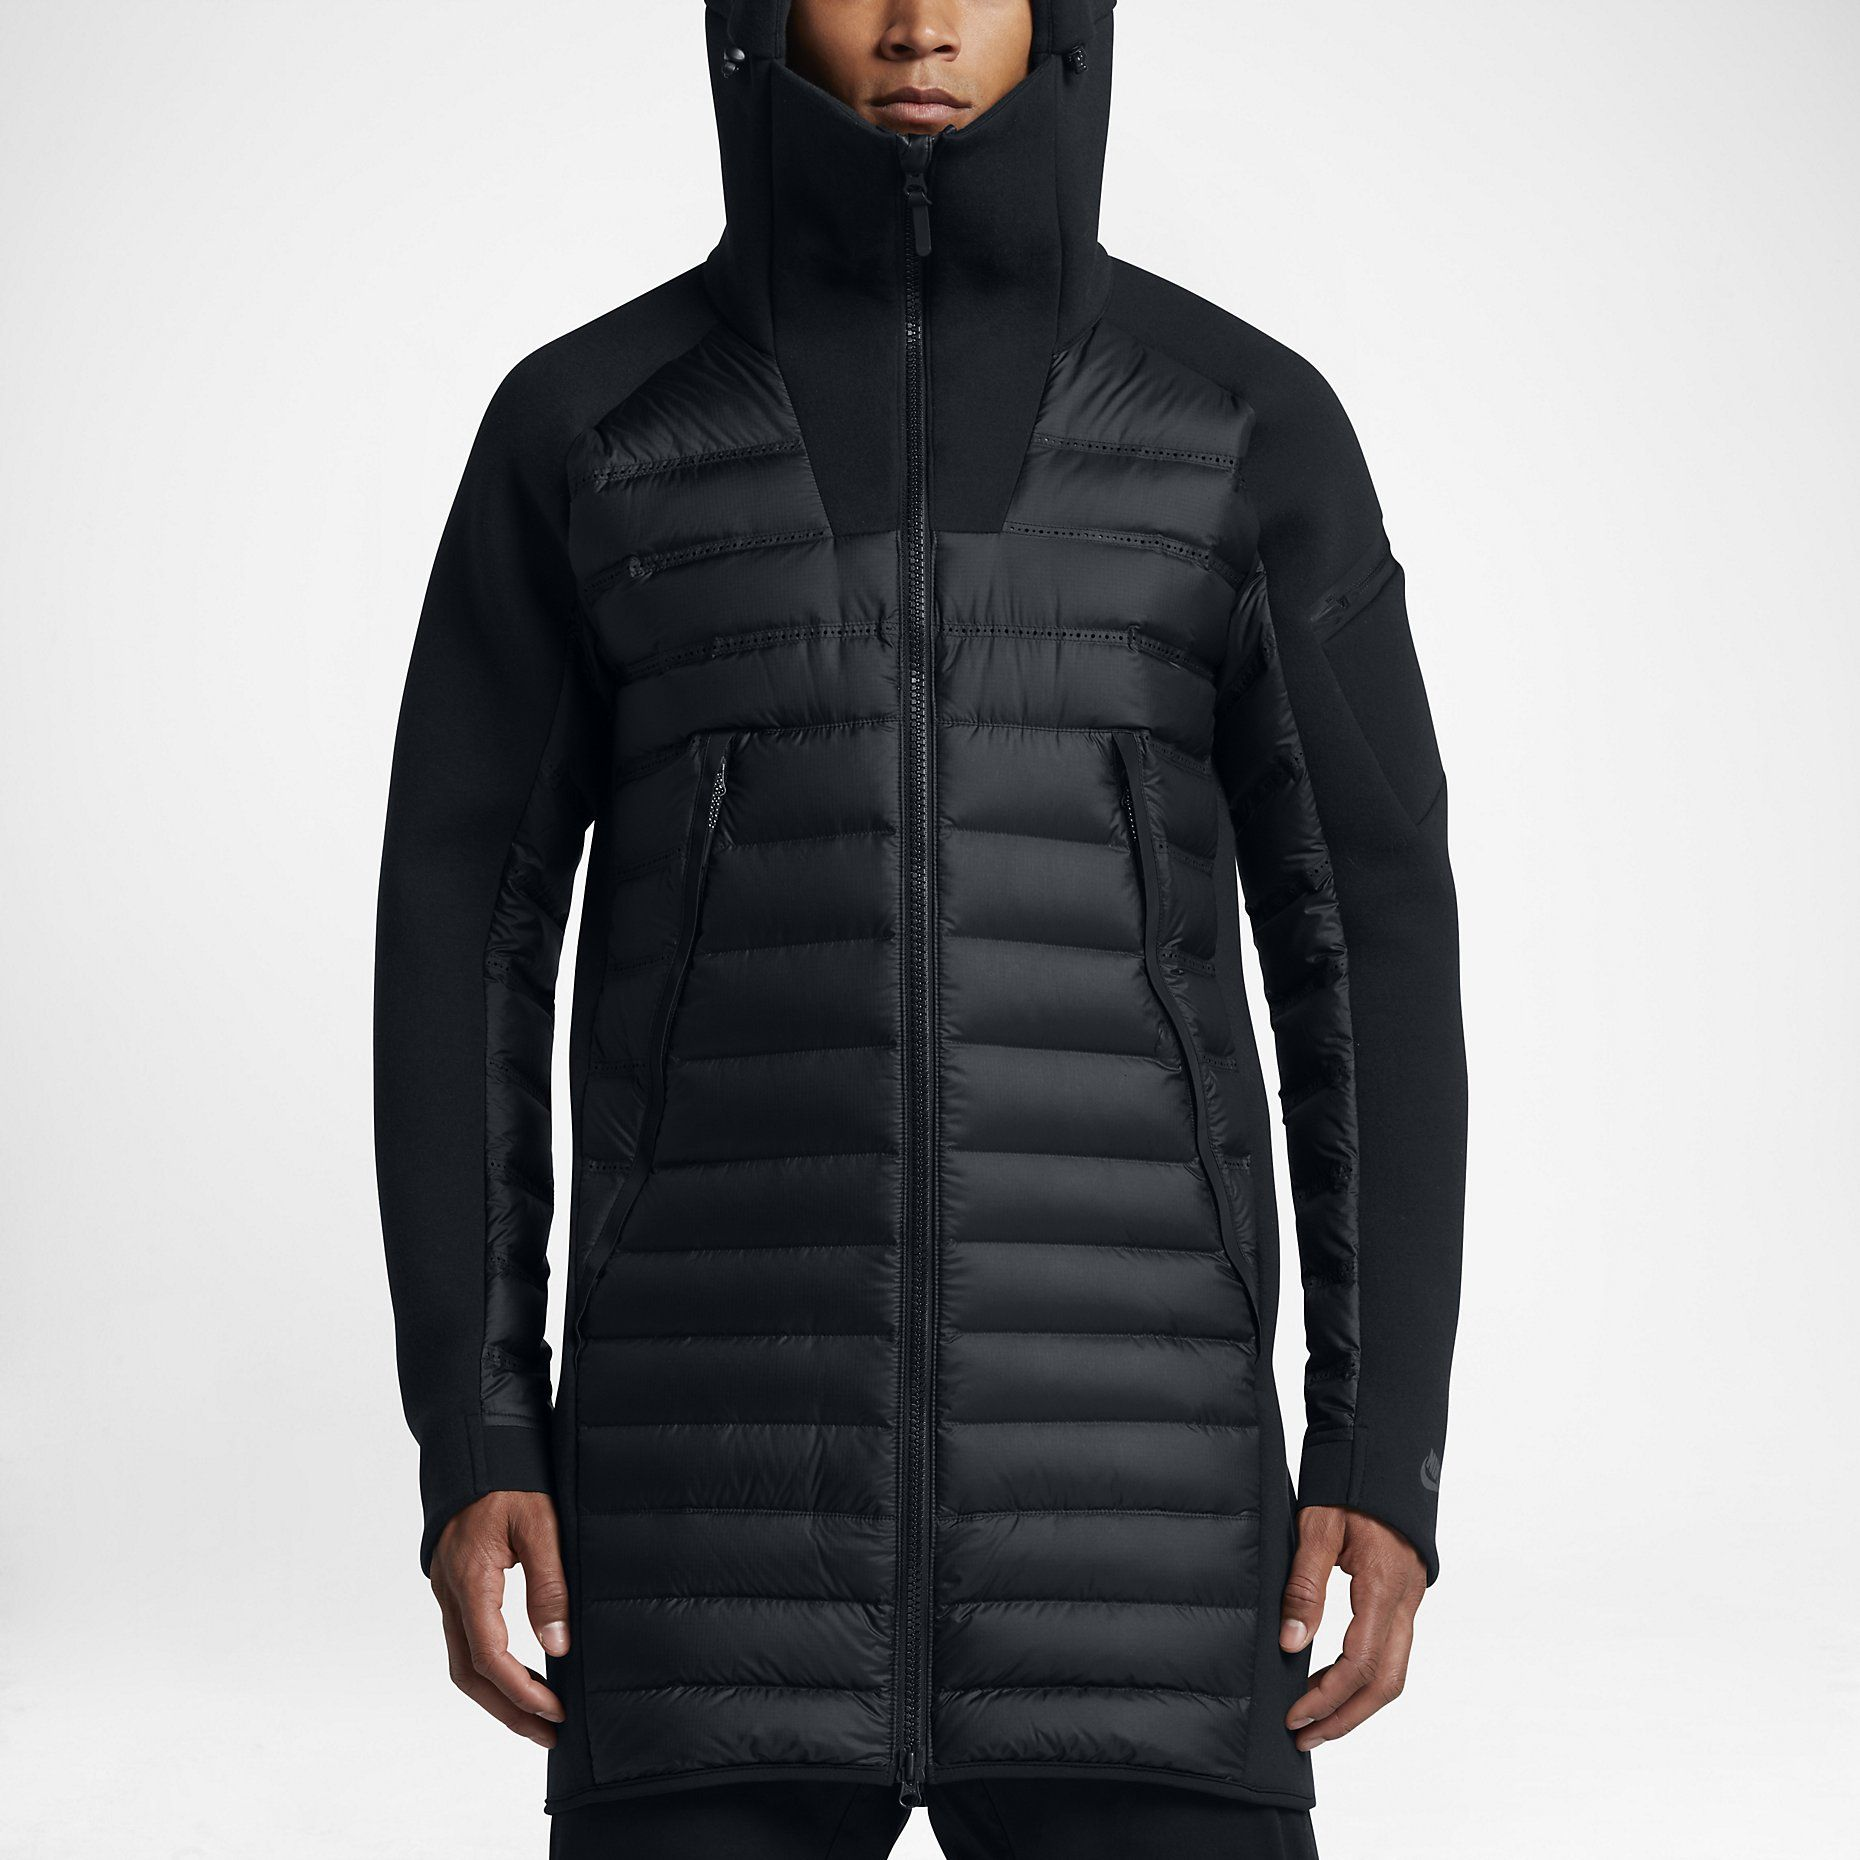 Shop Nike for shoes, clothing & gear at (With